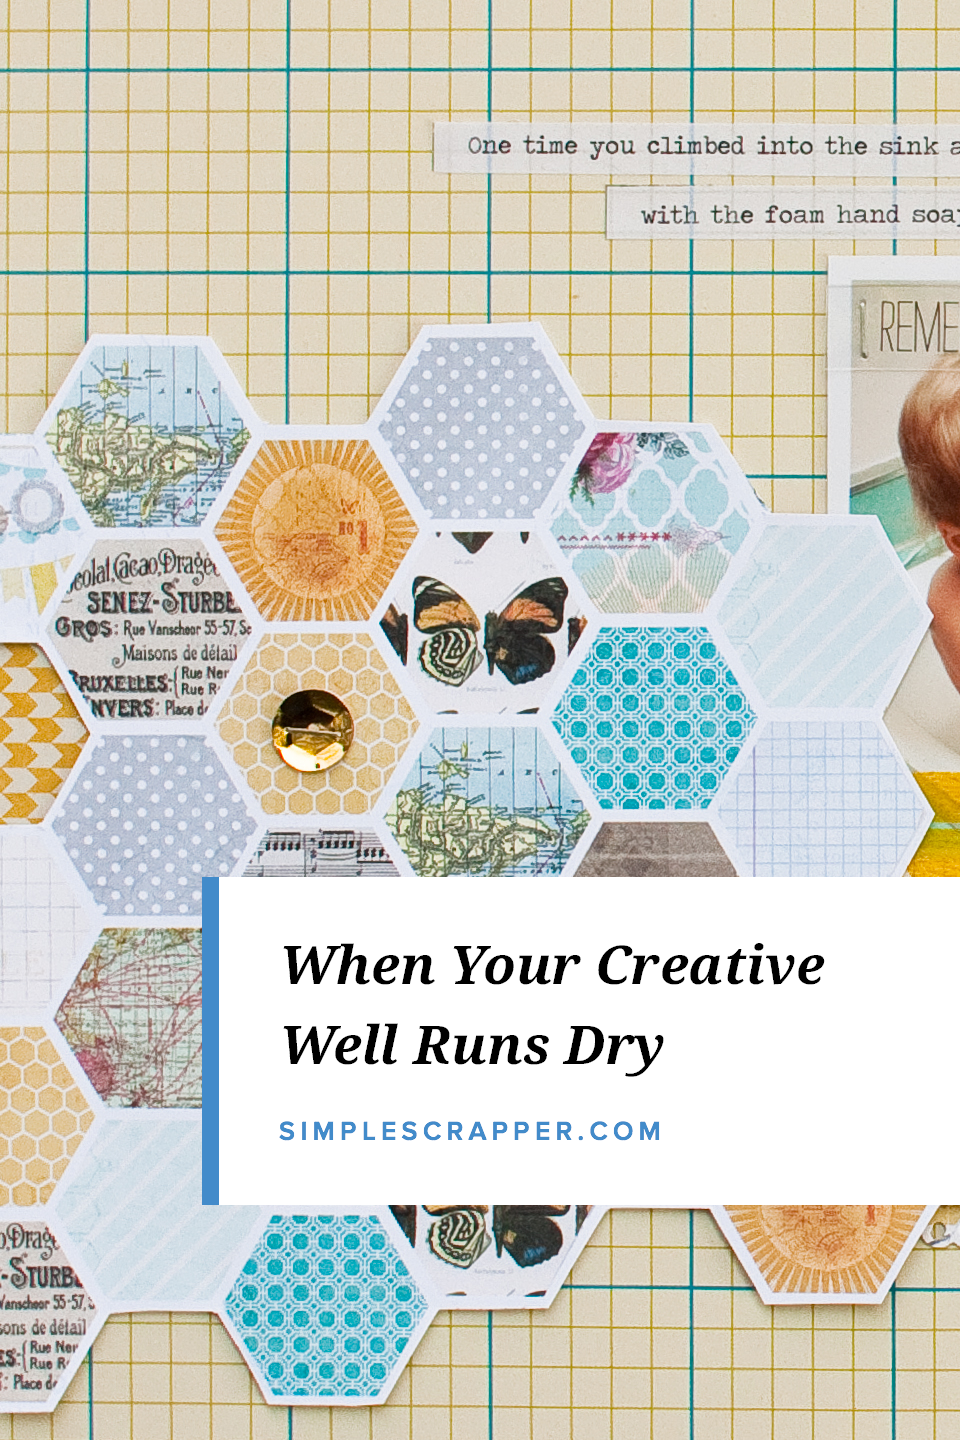 Follow These Steps to Fill Your Creative Well